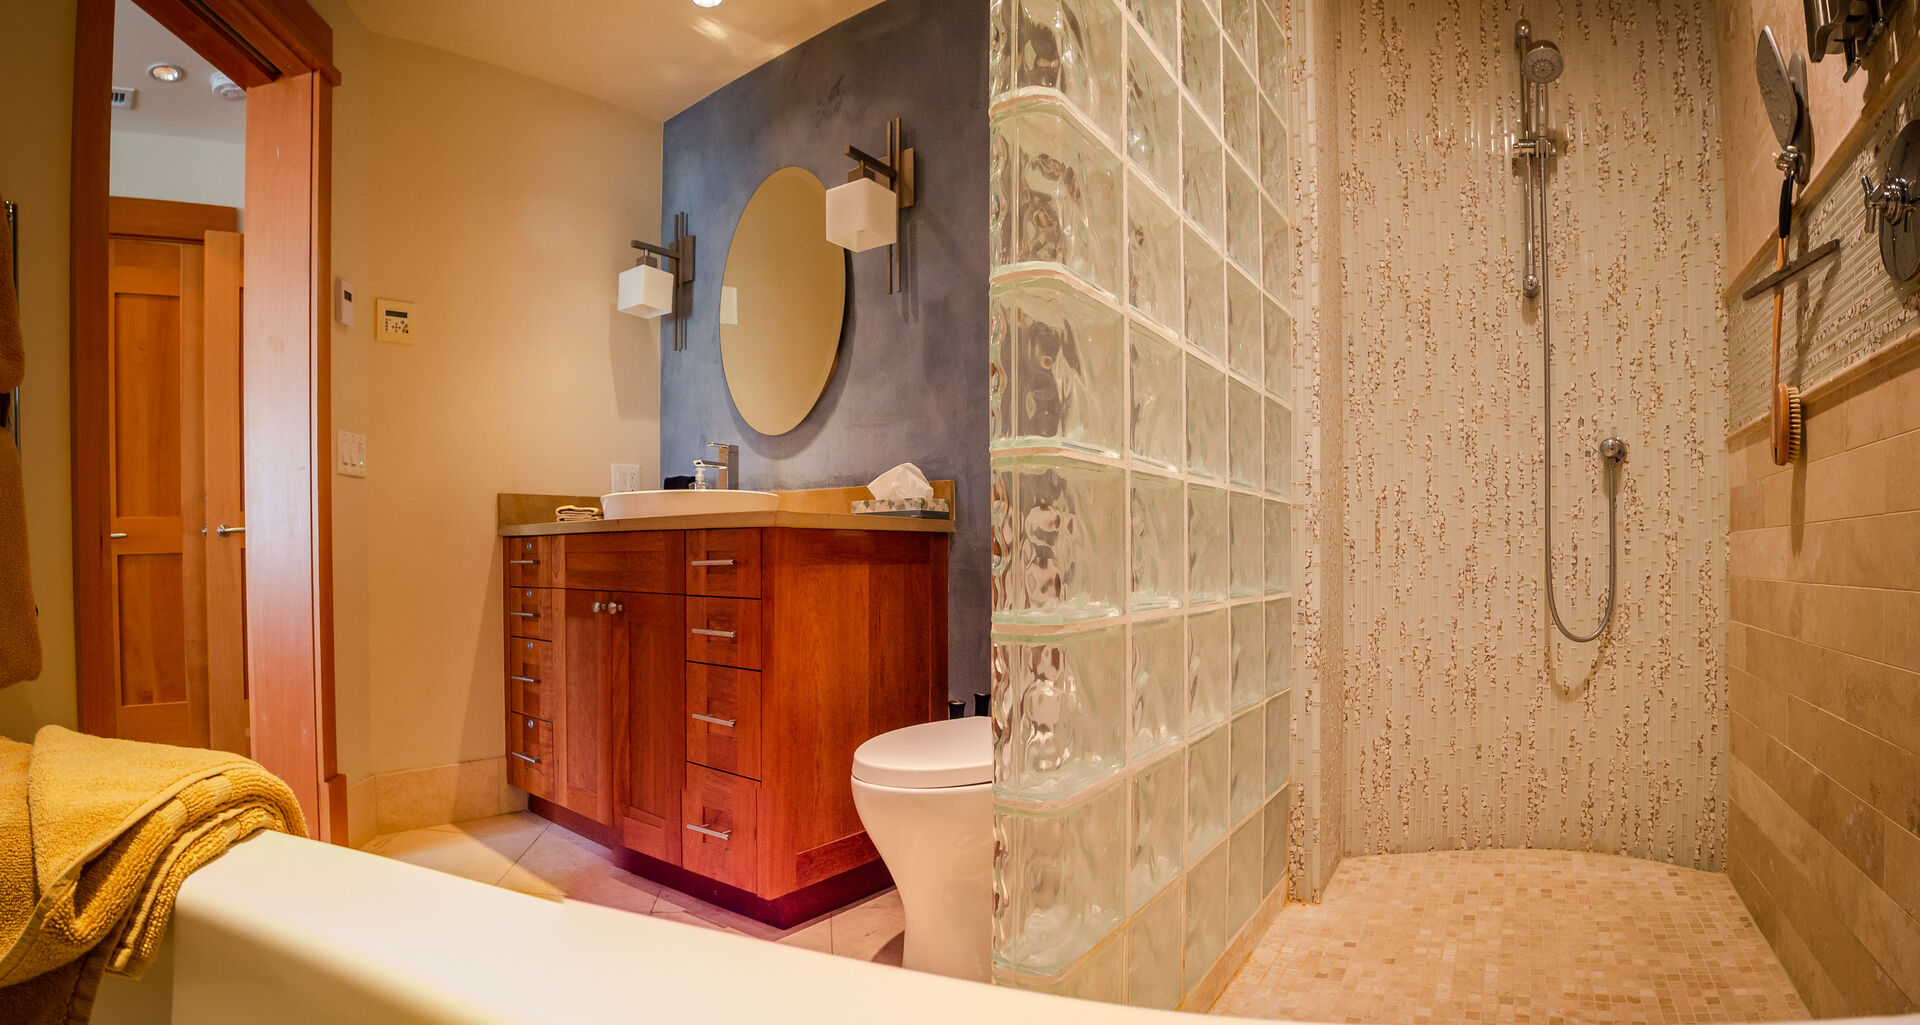 Bathroom with Single Sink, Soaking Tub, and a Shower